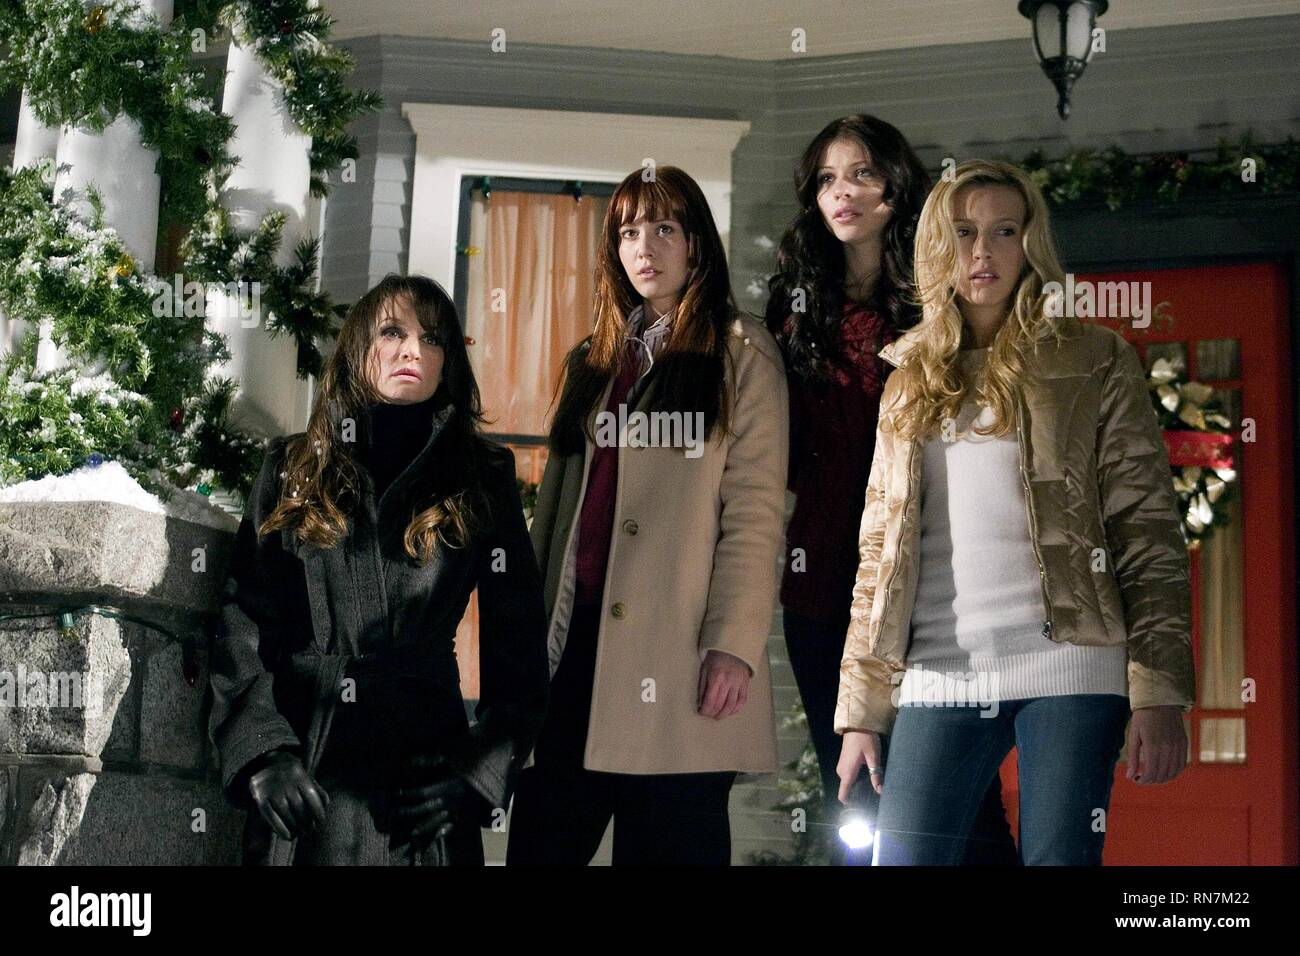 CLOKE,WINSTEAD,TRACHTENBERG,CASSIDY, BLACK CHRISTMAS, 2006 - Stock Image